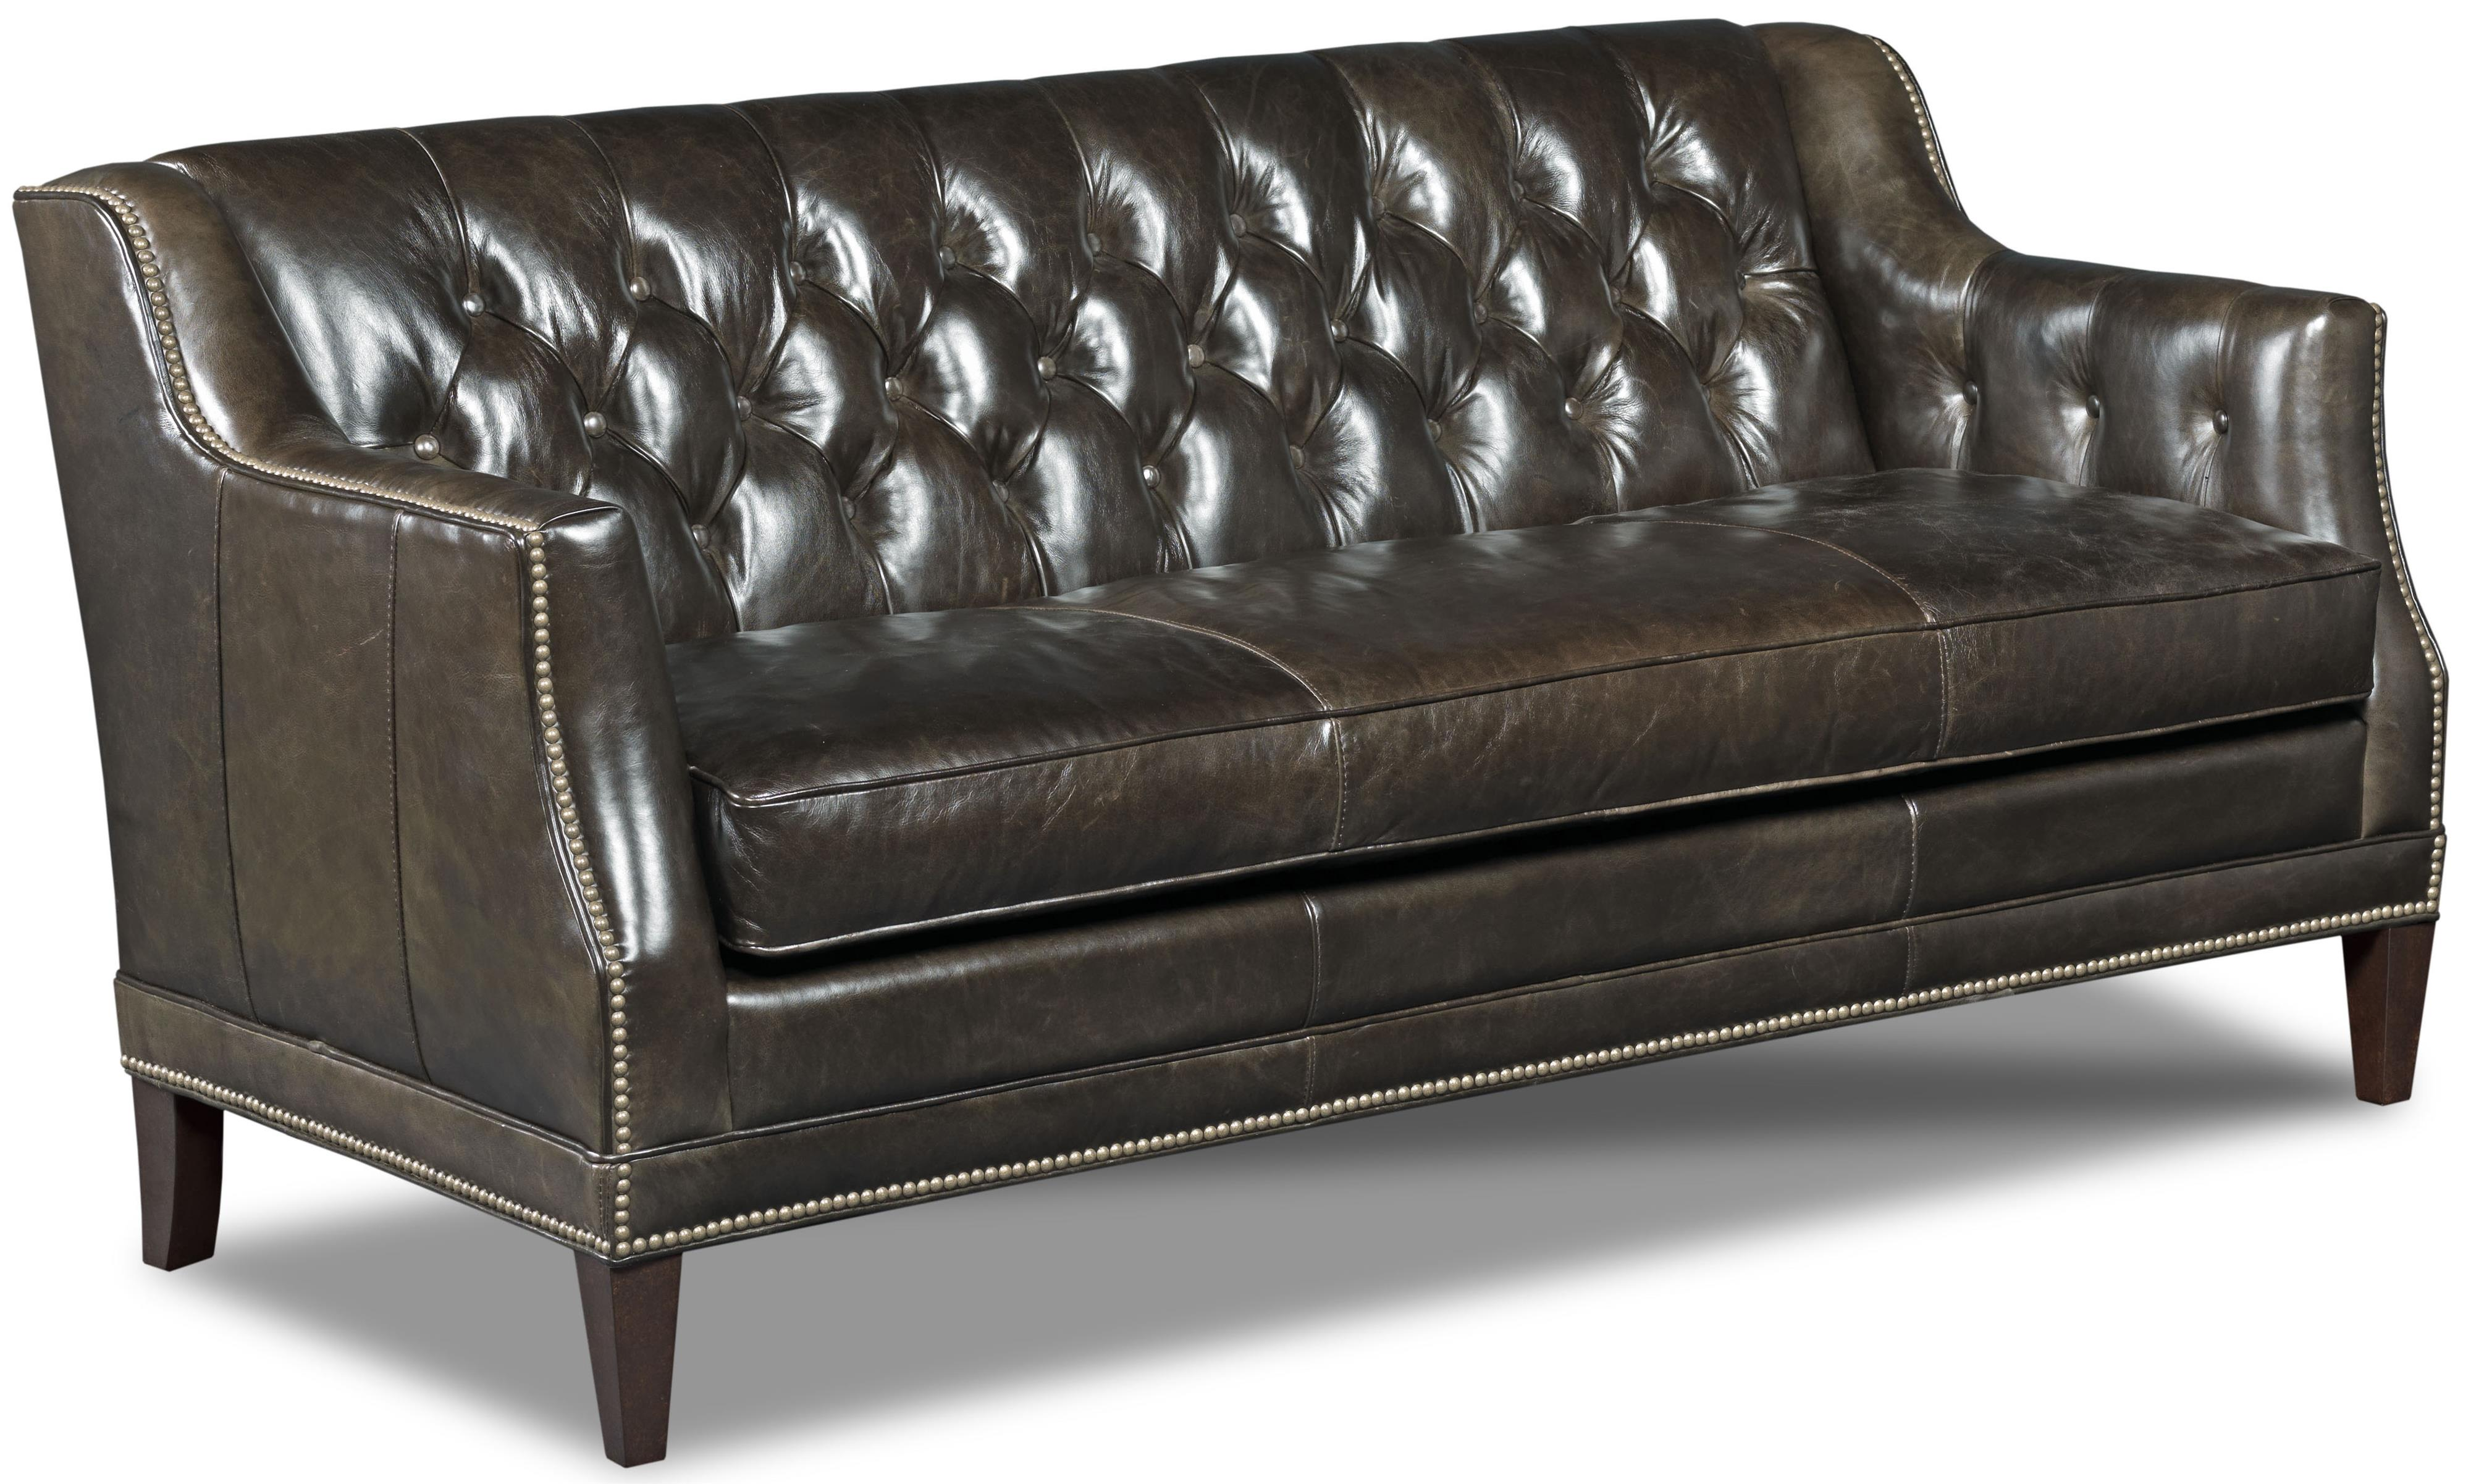 Hooker Furniture SS355 Stationary Sofa - Item Number: SS355-03-089